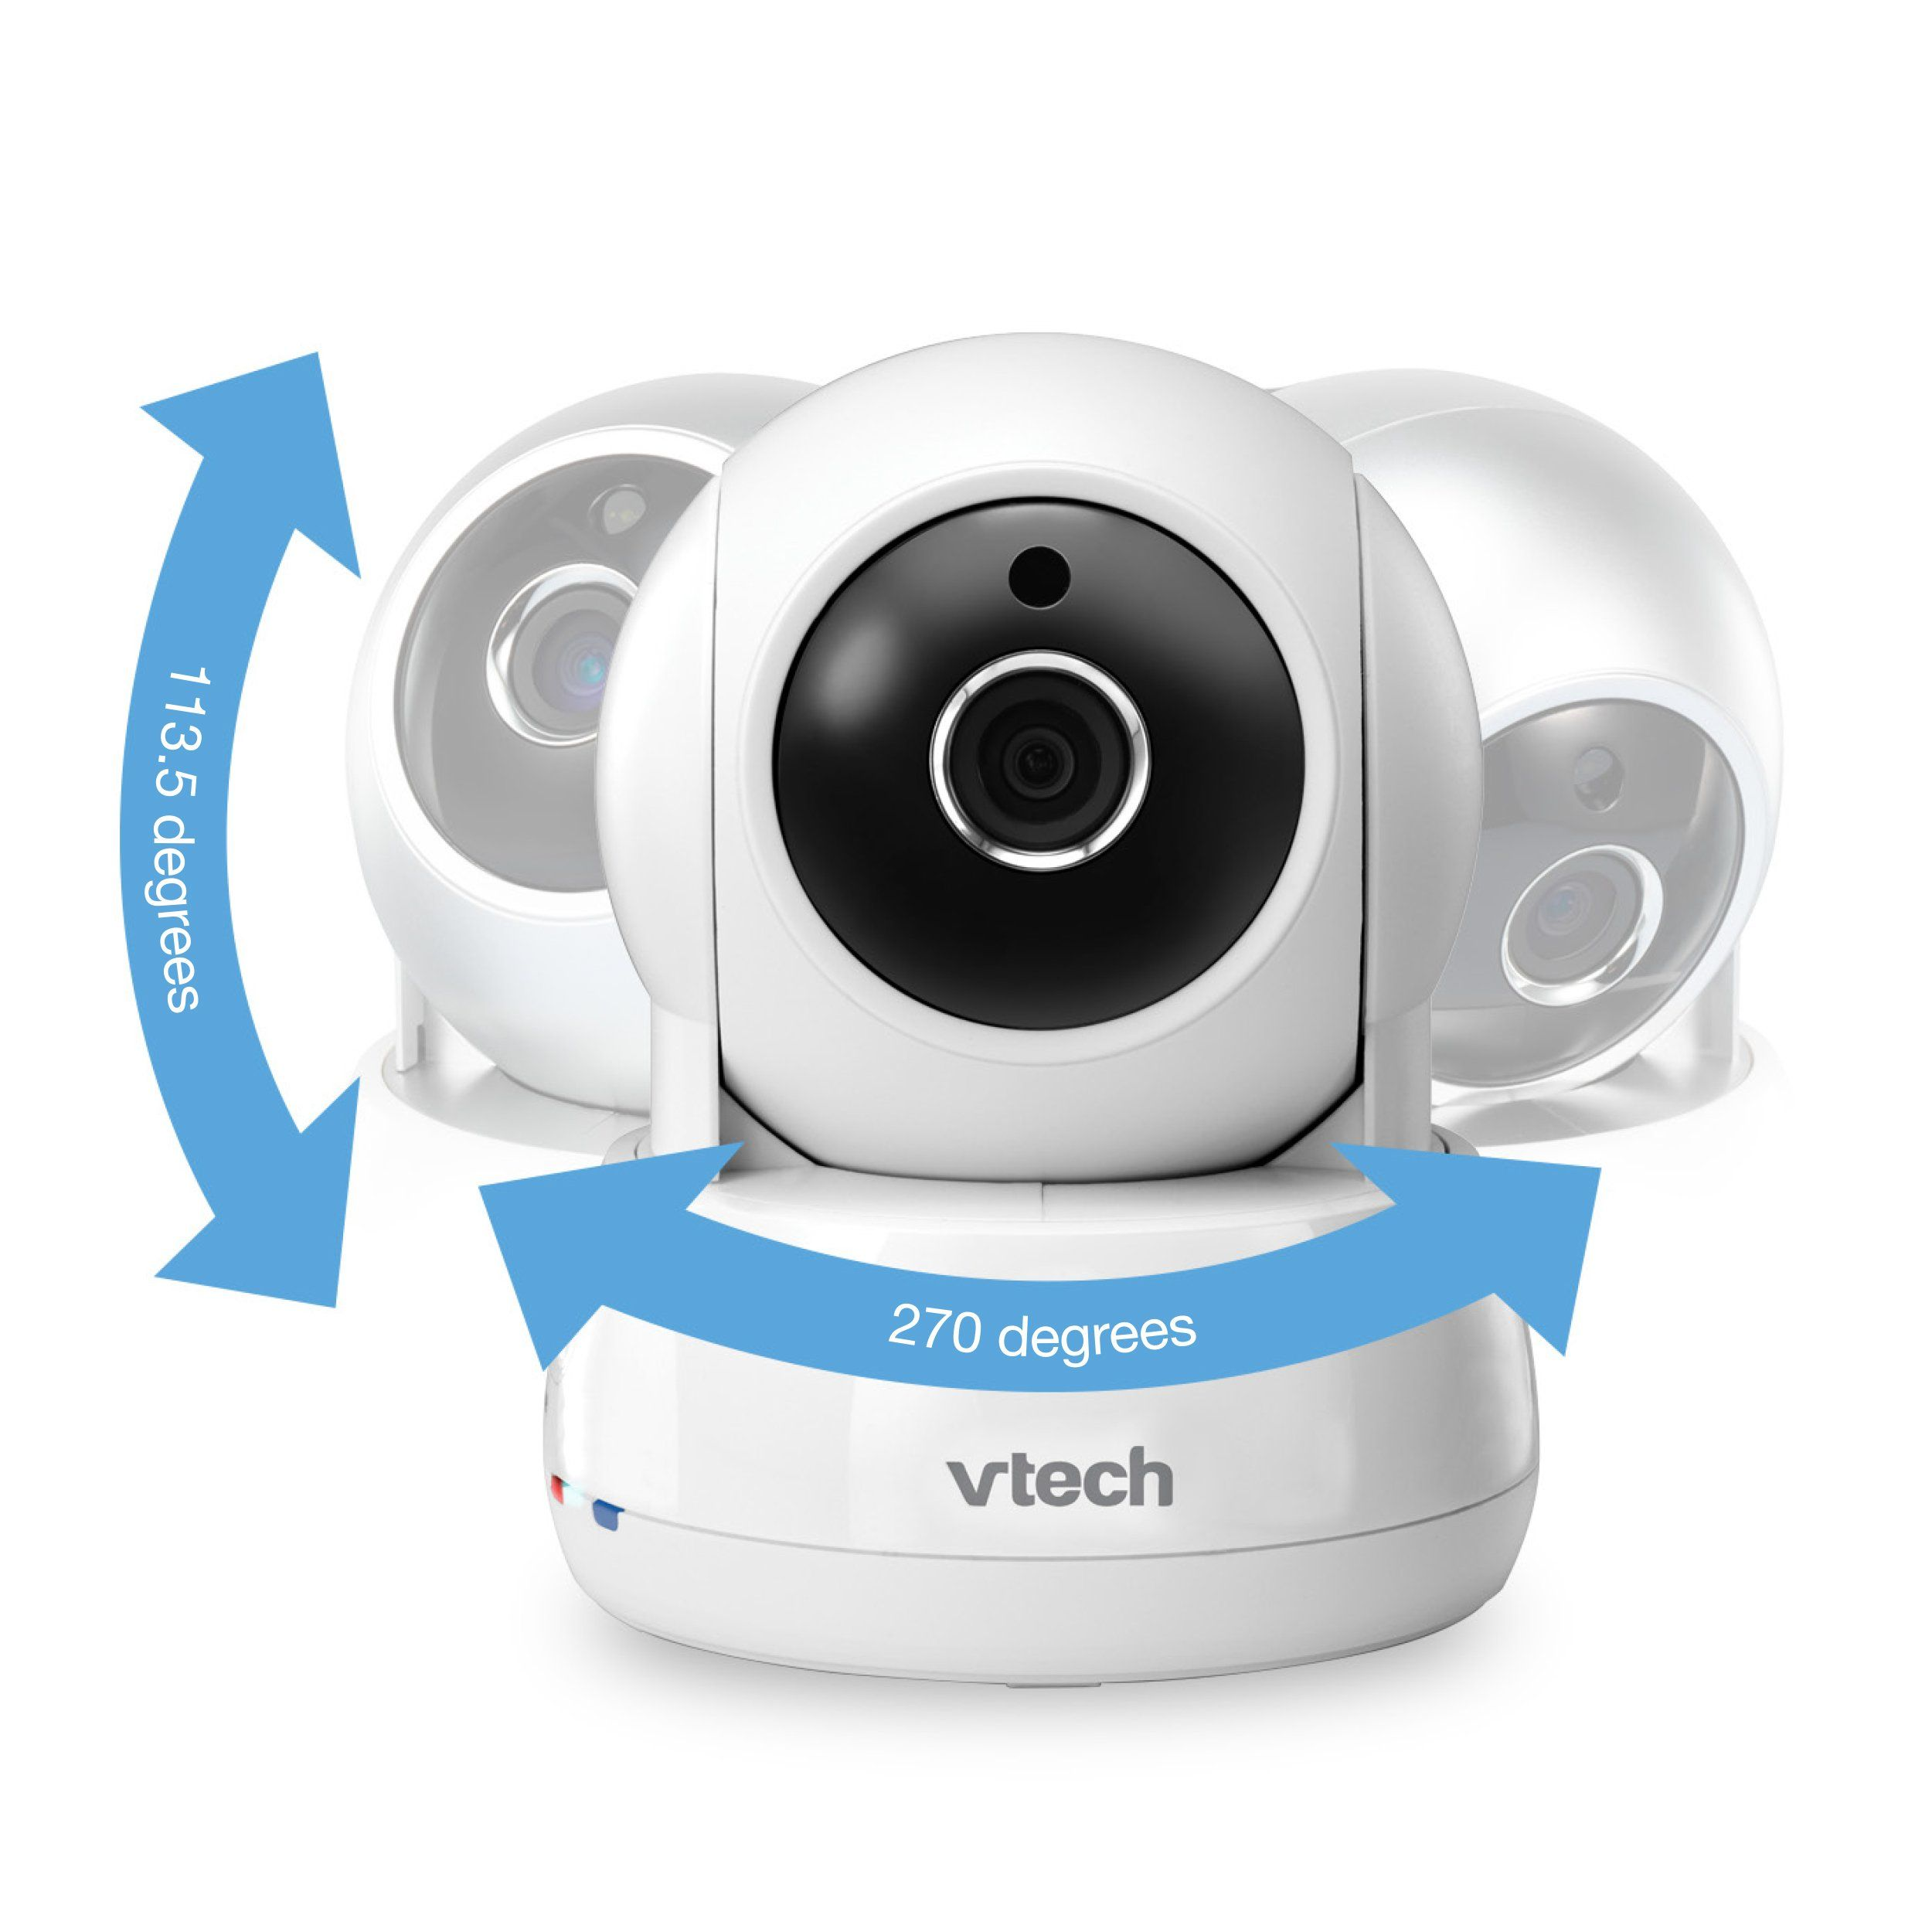 VTech VM991 Wireless WiFi Video Baby Monitor with Remote